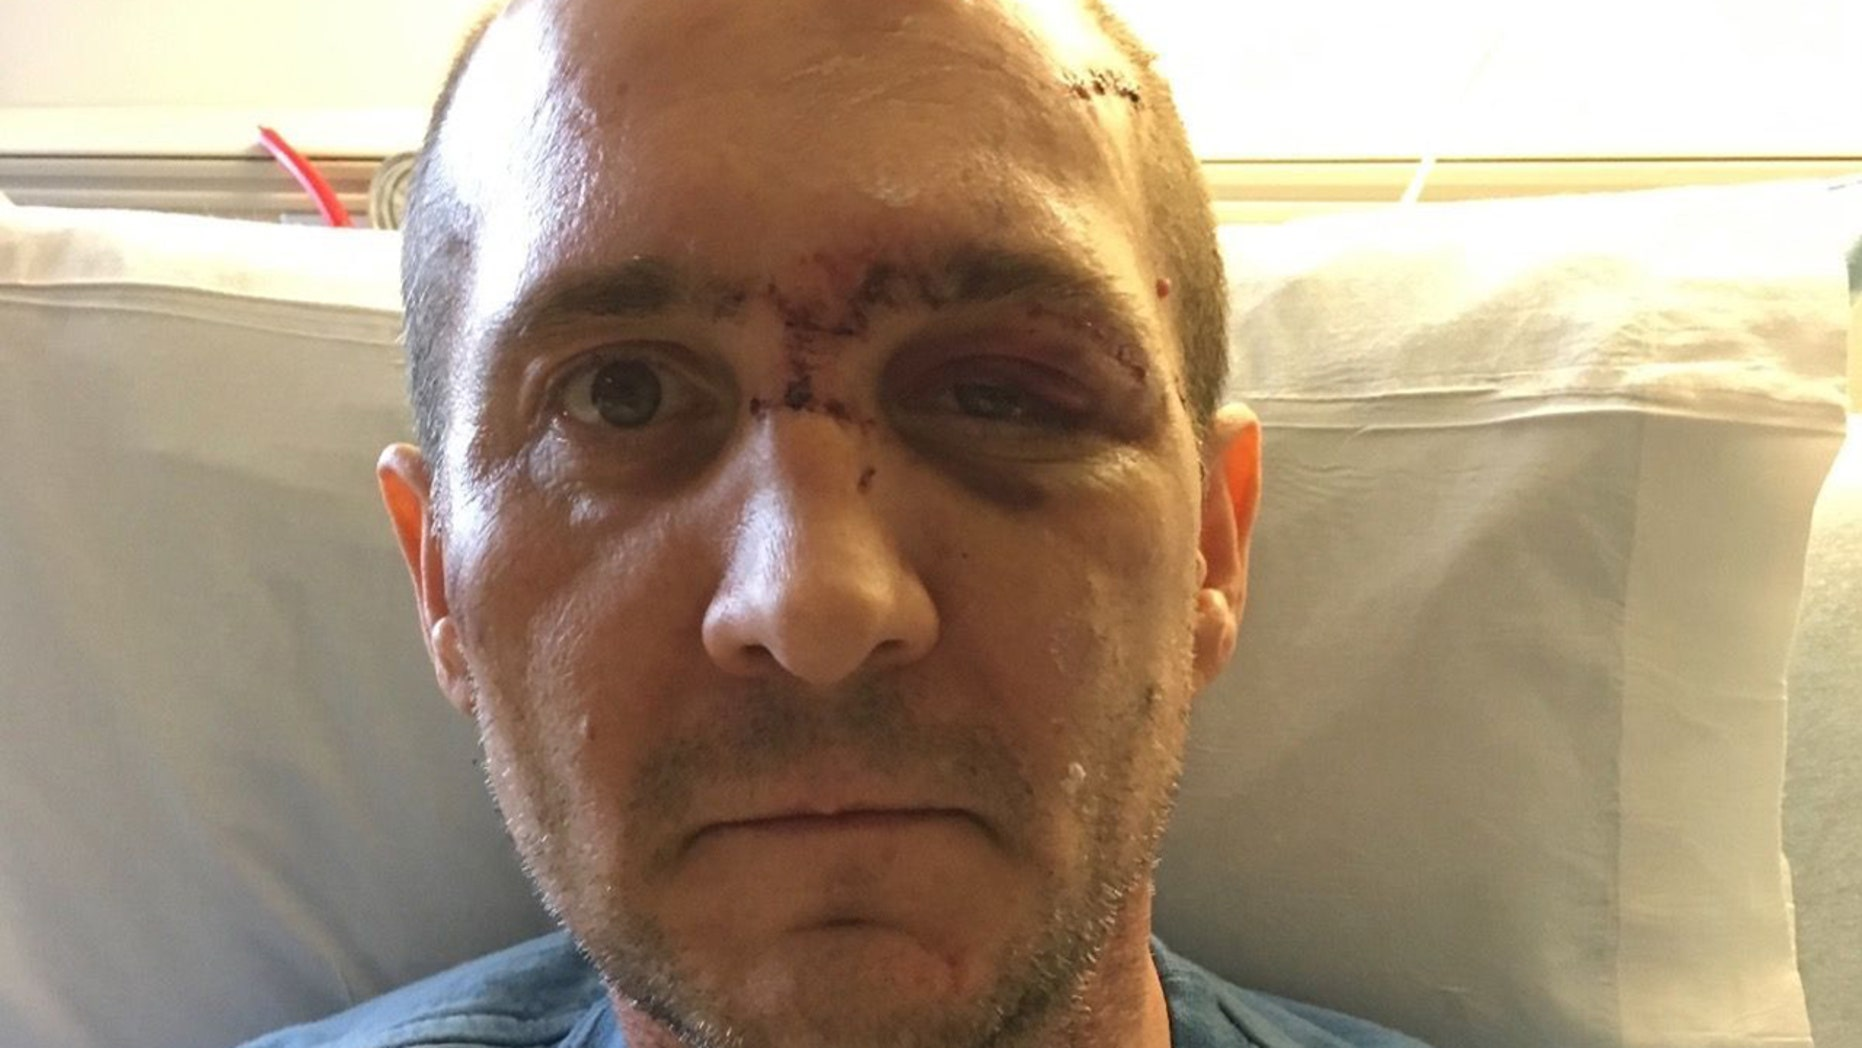 Joshua Morrison told Fox 12 intruders ambushed him in his home.